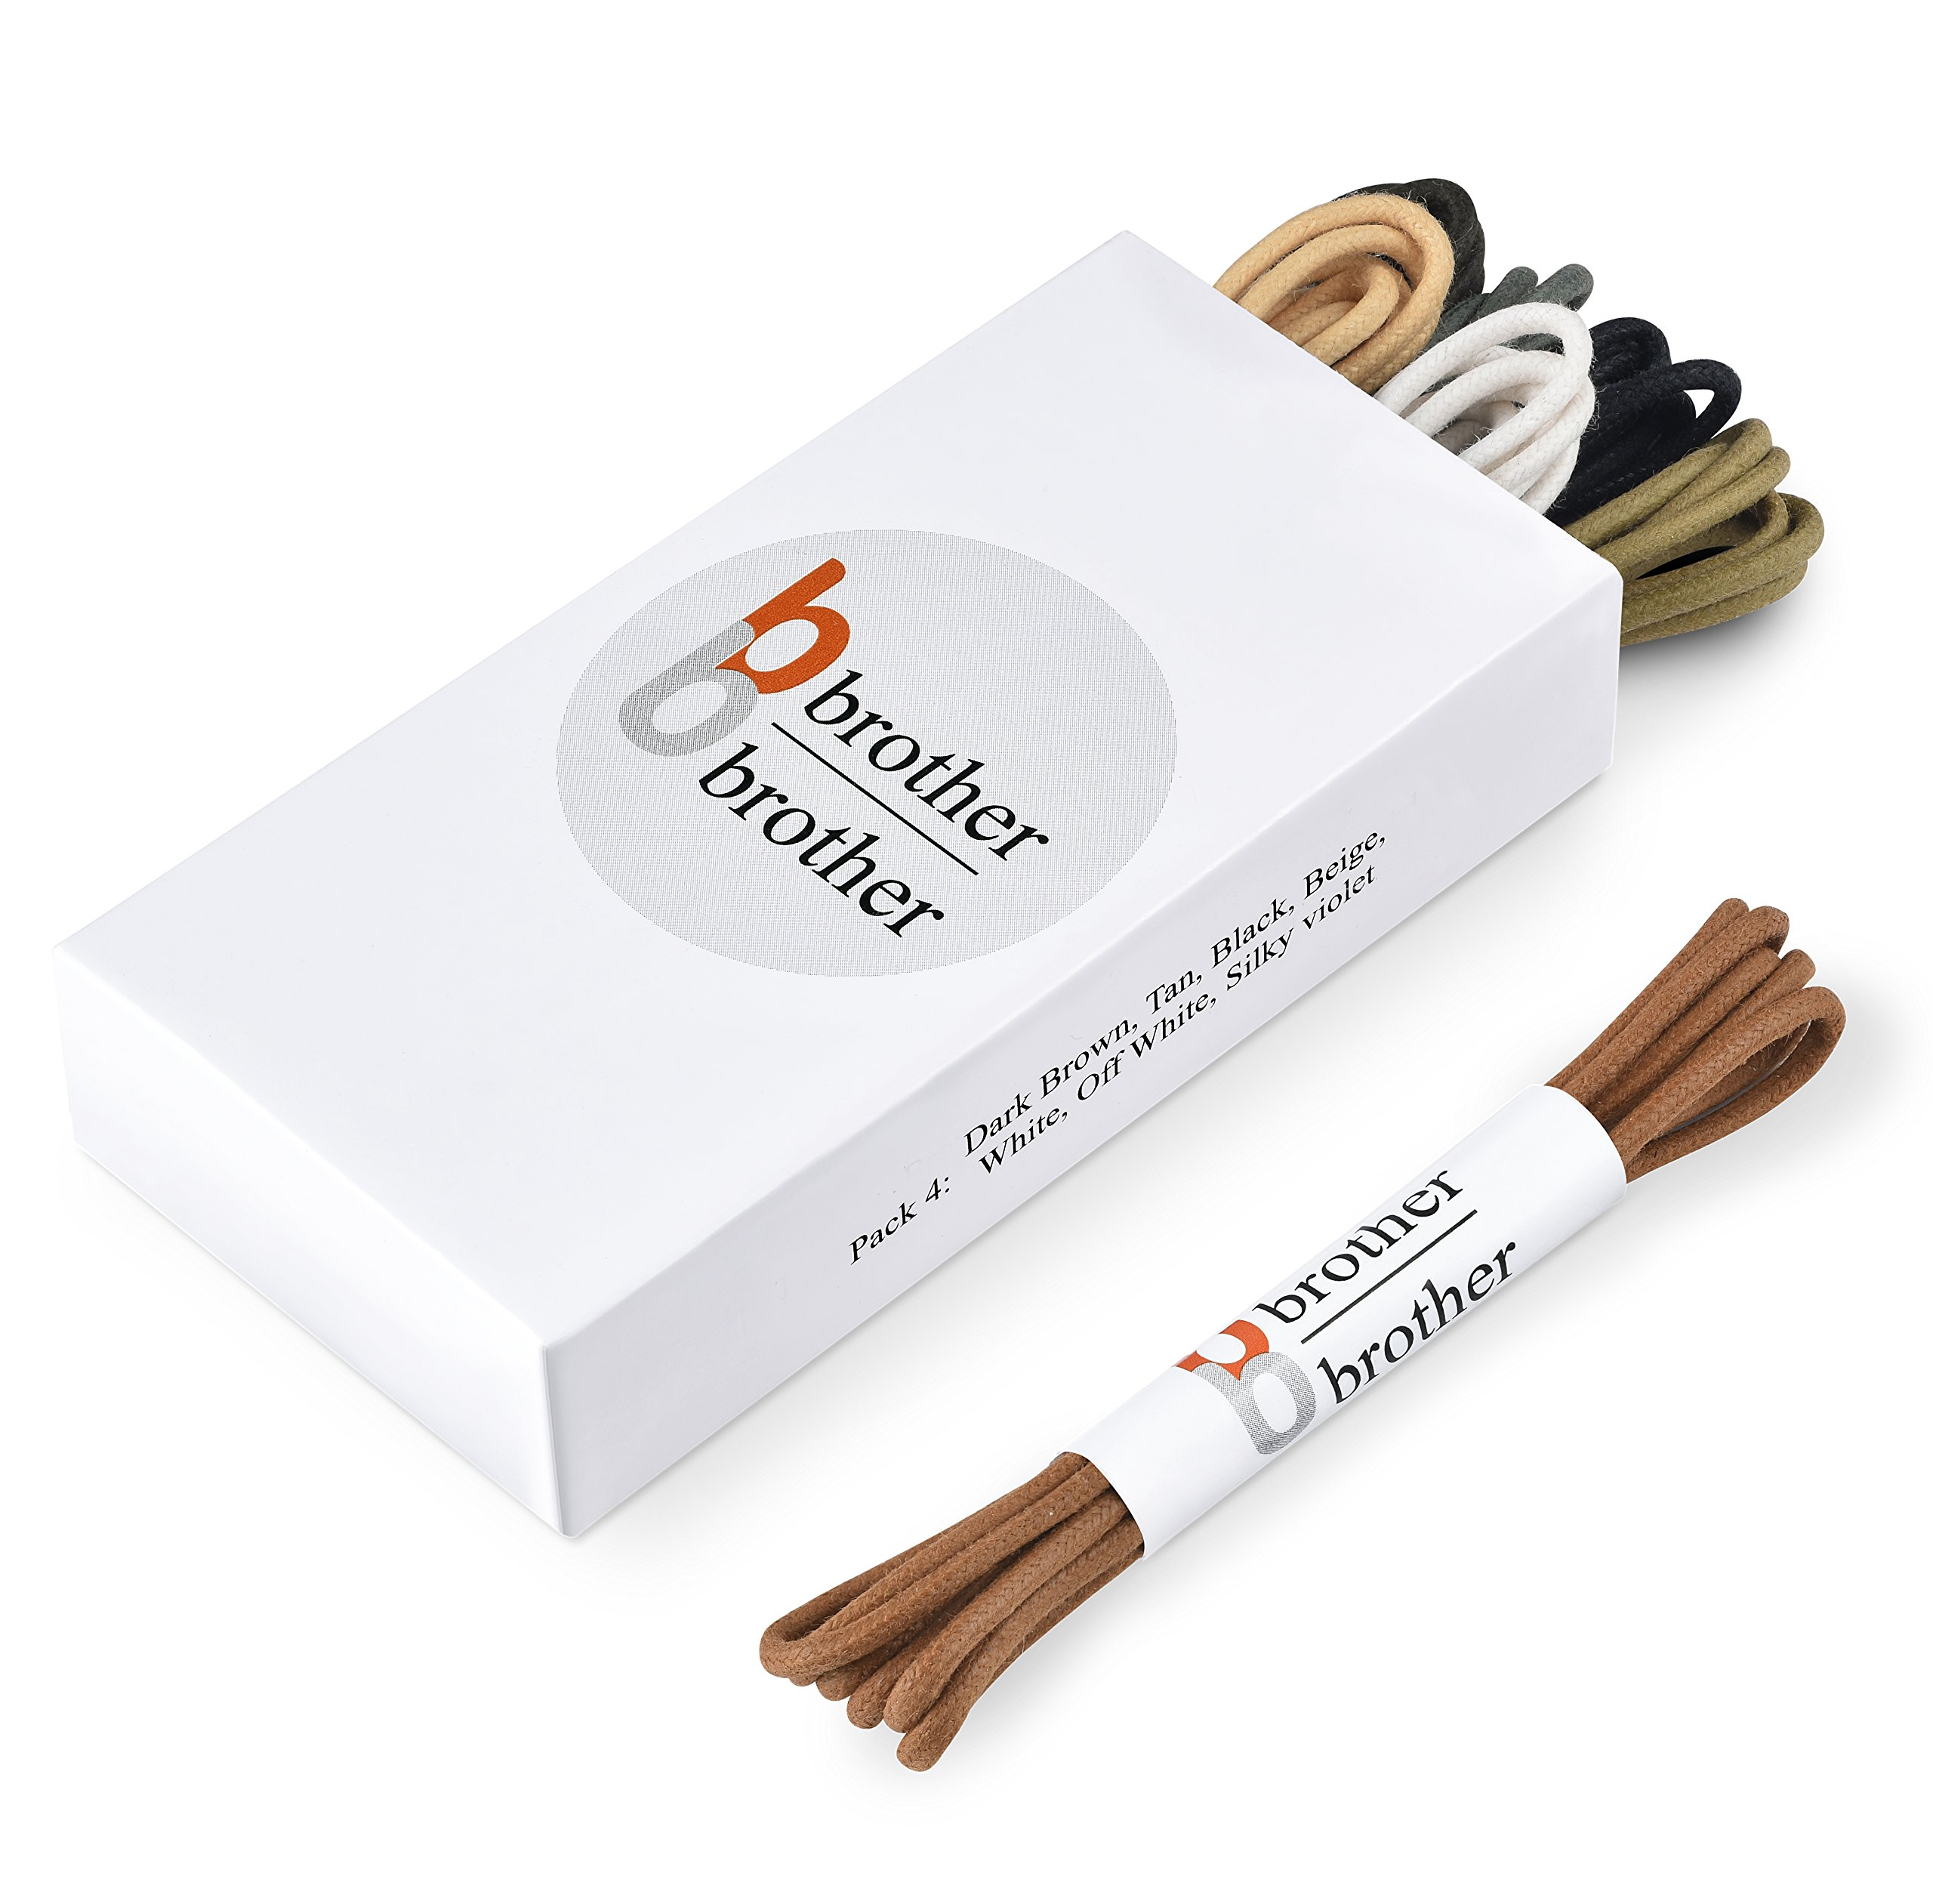 Brother Brother Colored Oxford Shoe Laces for Men (7 Pairs) | 100% Cotton Round and Waxed Shoelaces for Dress Shoes | Gift Box with Dark Brown, Tan, Black, Beige, White, Off White and Silky Violet